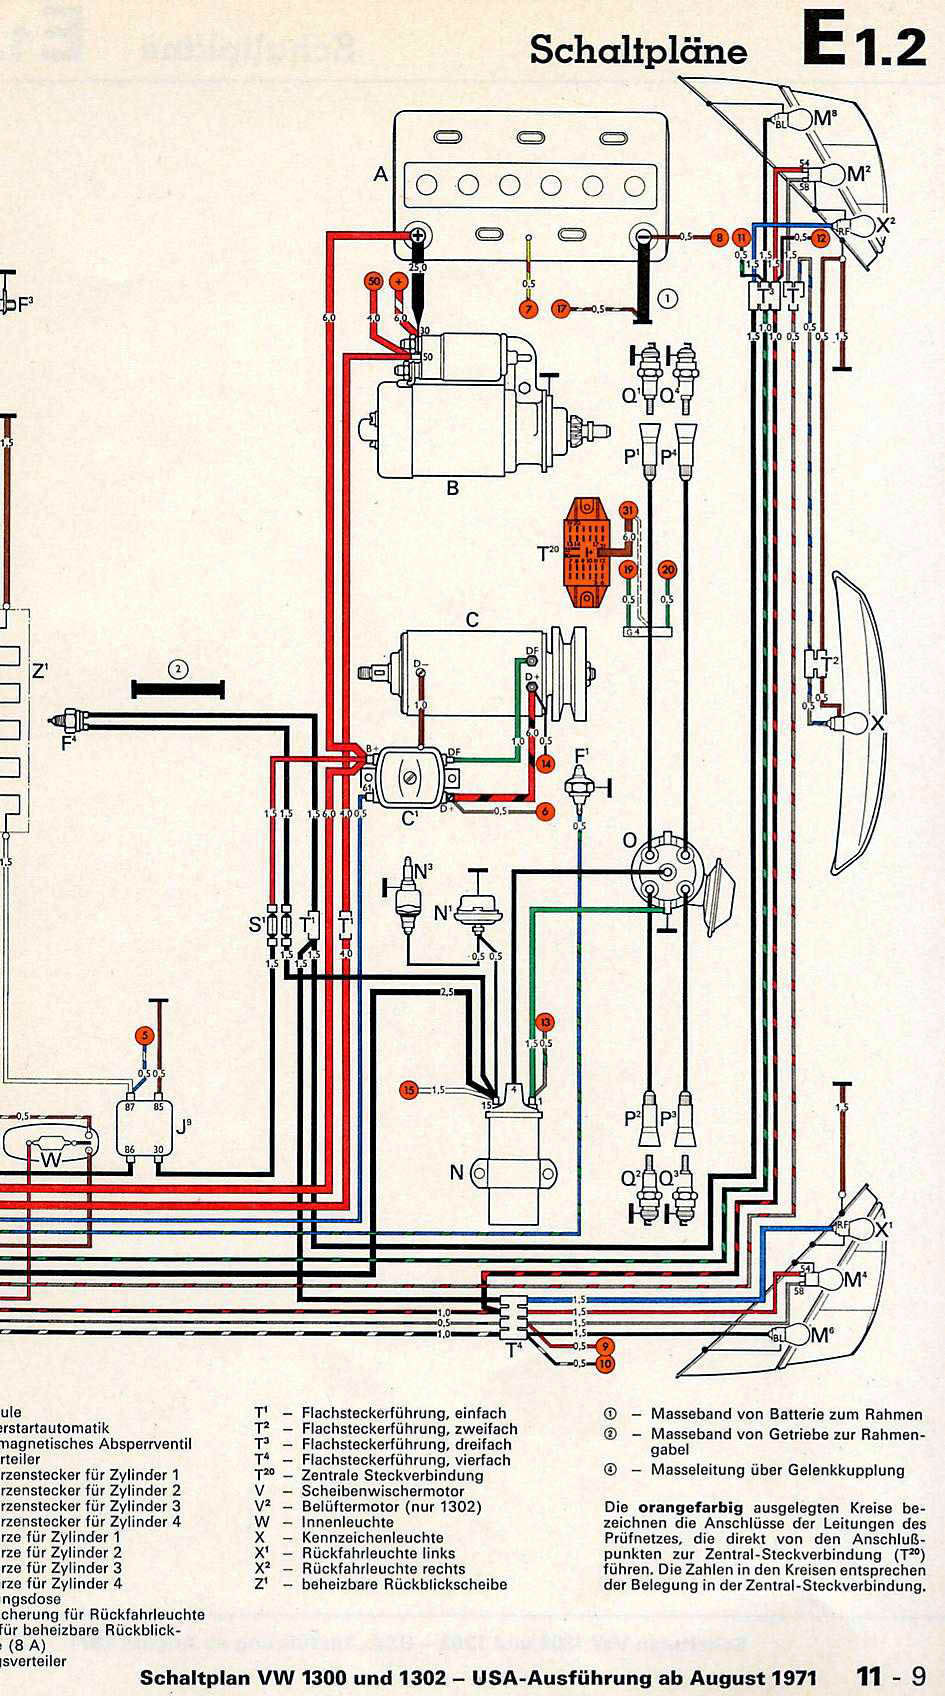 Viewtopic moreover 93 Dodge Dakota Wiring Diagram C186d3c9d201ef8e also Air Conditioner Switch Wiring also 53338 69 Gtv Brake Pressure Sensor Manifold Piston Seals 11 furthermore Engine Diagram 1980 Camaro. on vw super beetle wiring diagram